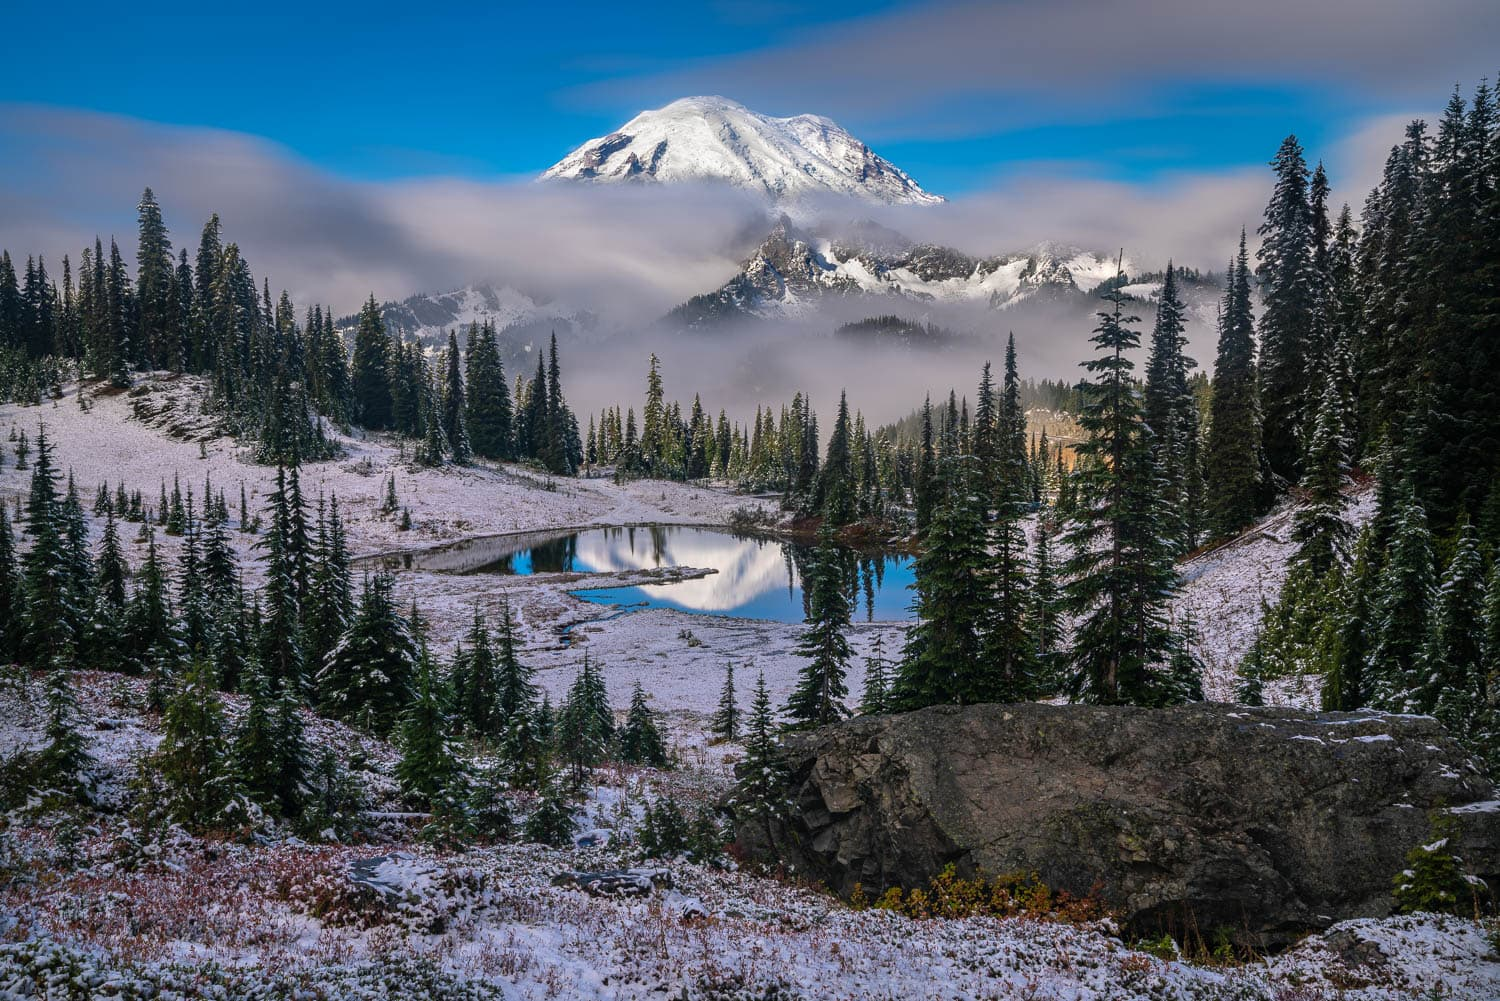 Snow covered hillside with mountain reflected in small lake